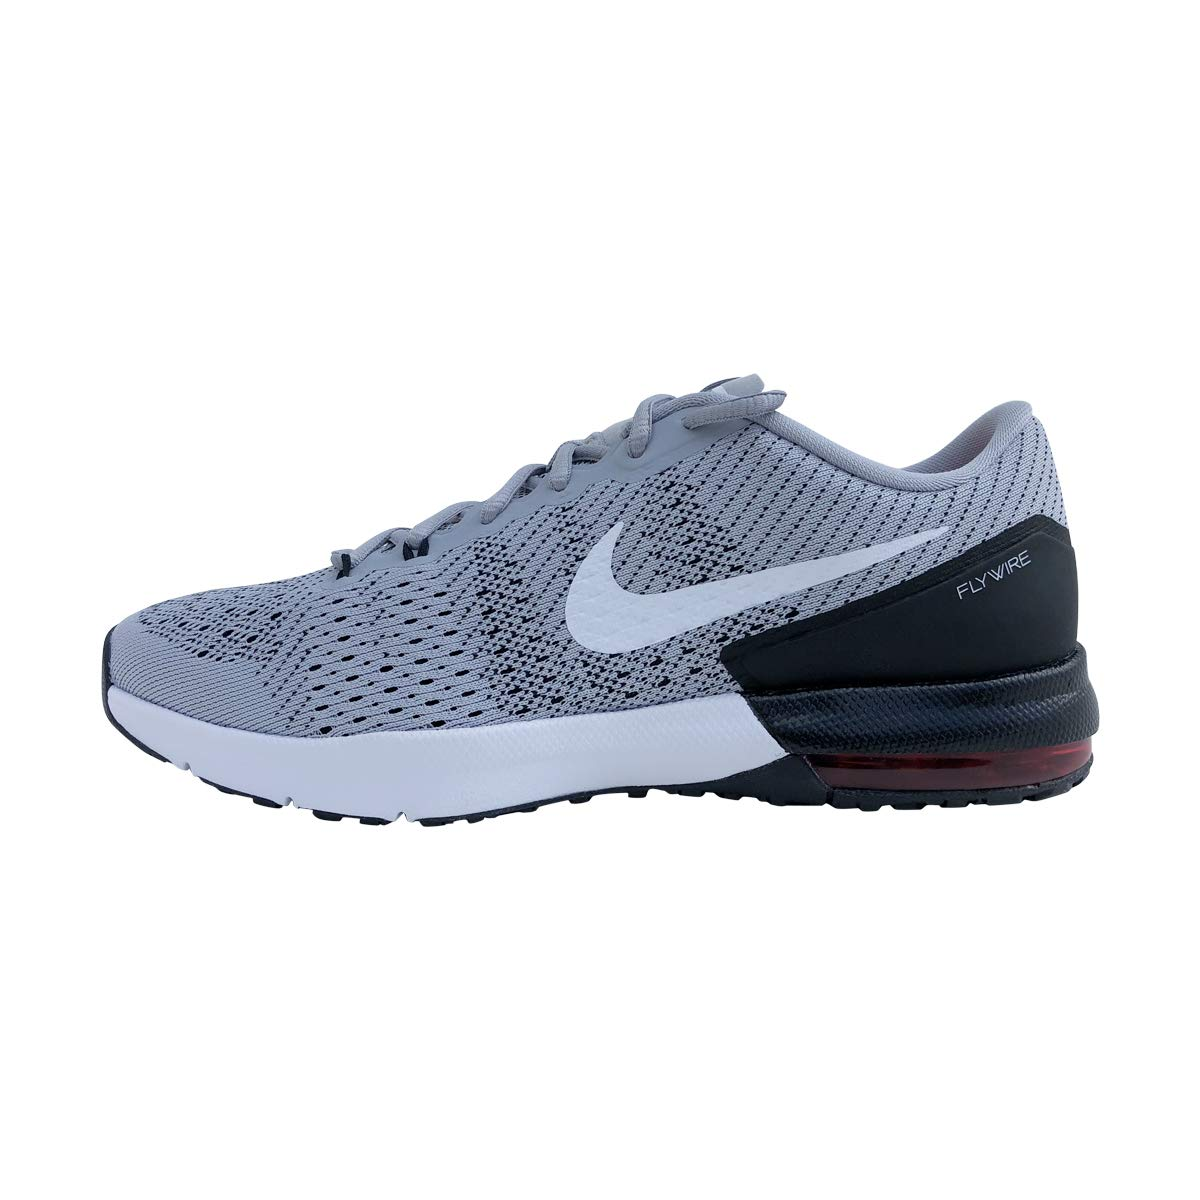 34ac33a63b01 Galleon - NIKE Mens Air Max Typha Training Shoe (8.5 D(M) US